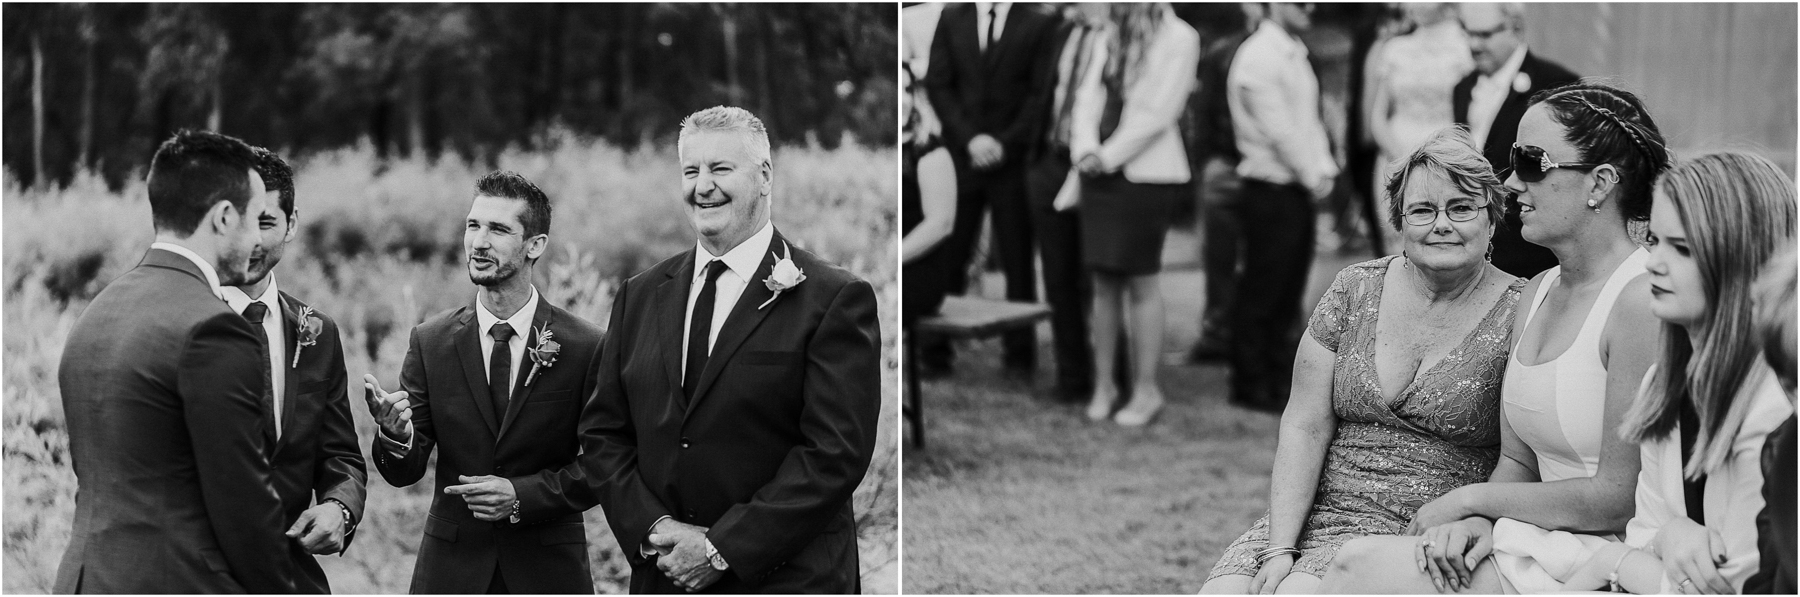 Courtney-Josh-Growwild-Bowral-southernhighlans-Wedding-51